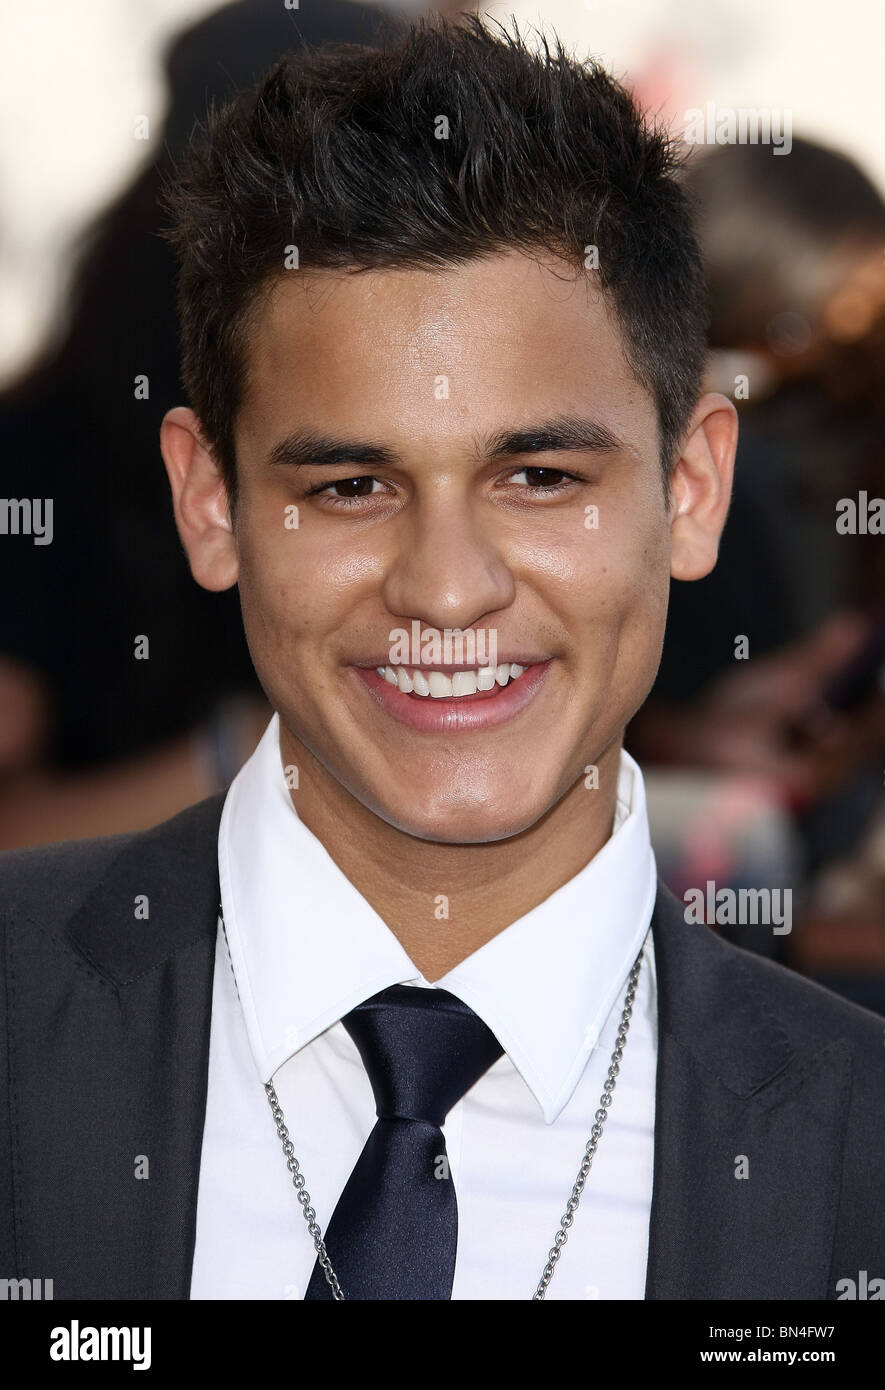 BRONSON PELLETIER THE TWILIGHT SAGA: ECLIPSE PREMIERE AT THE LOS ANGELES FILM FESTIVAL DOWNTOWN LOS ANGELES CA 24 - Stock Image